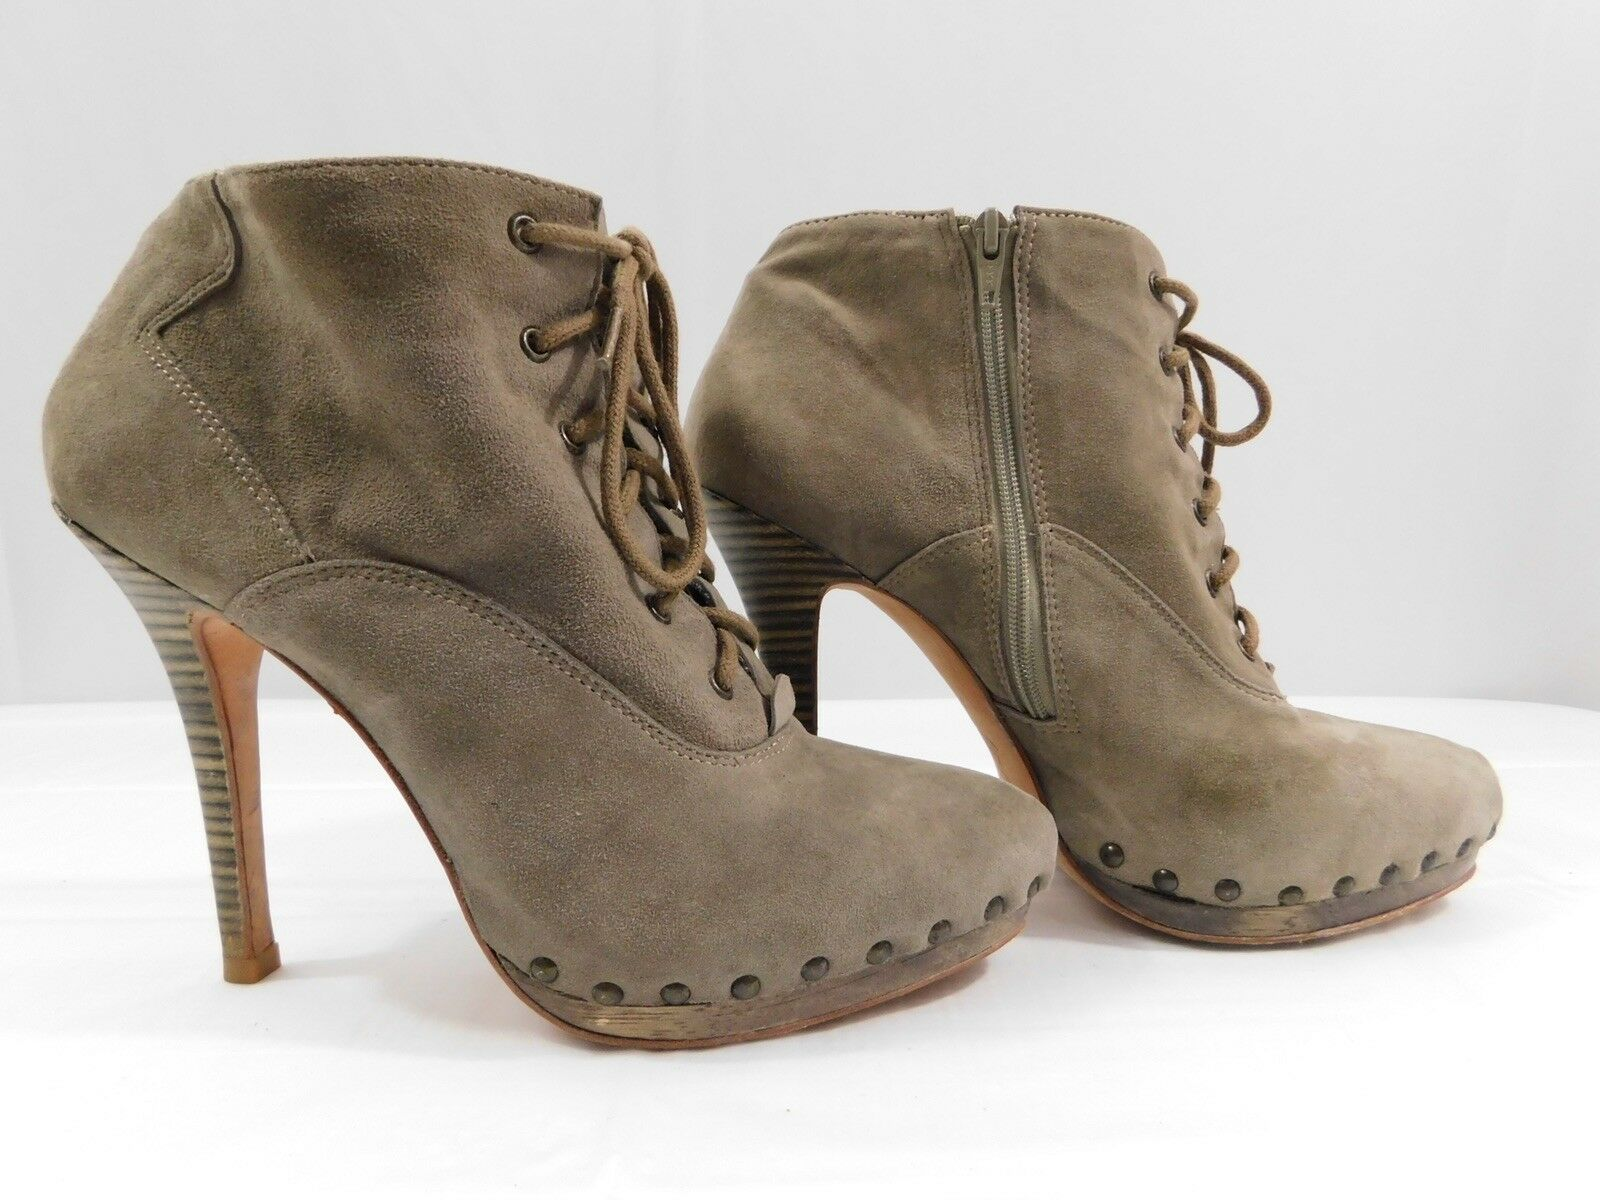 Madison Harding Clay Kid Suede Green Leather Womens Size 8B Booties Heels Boots